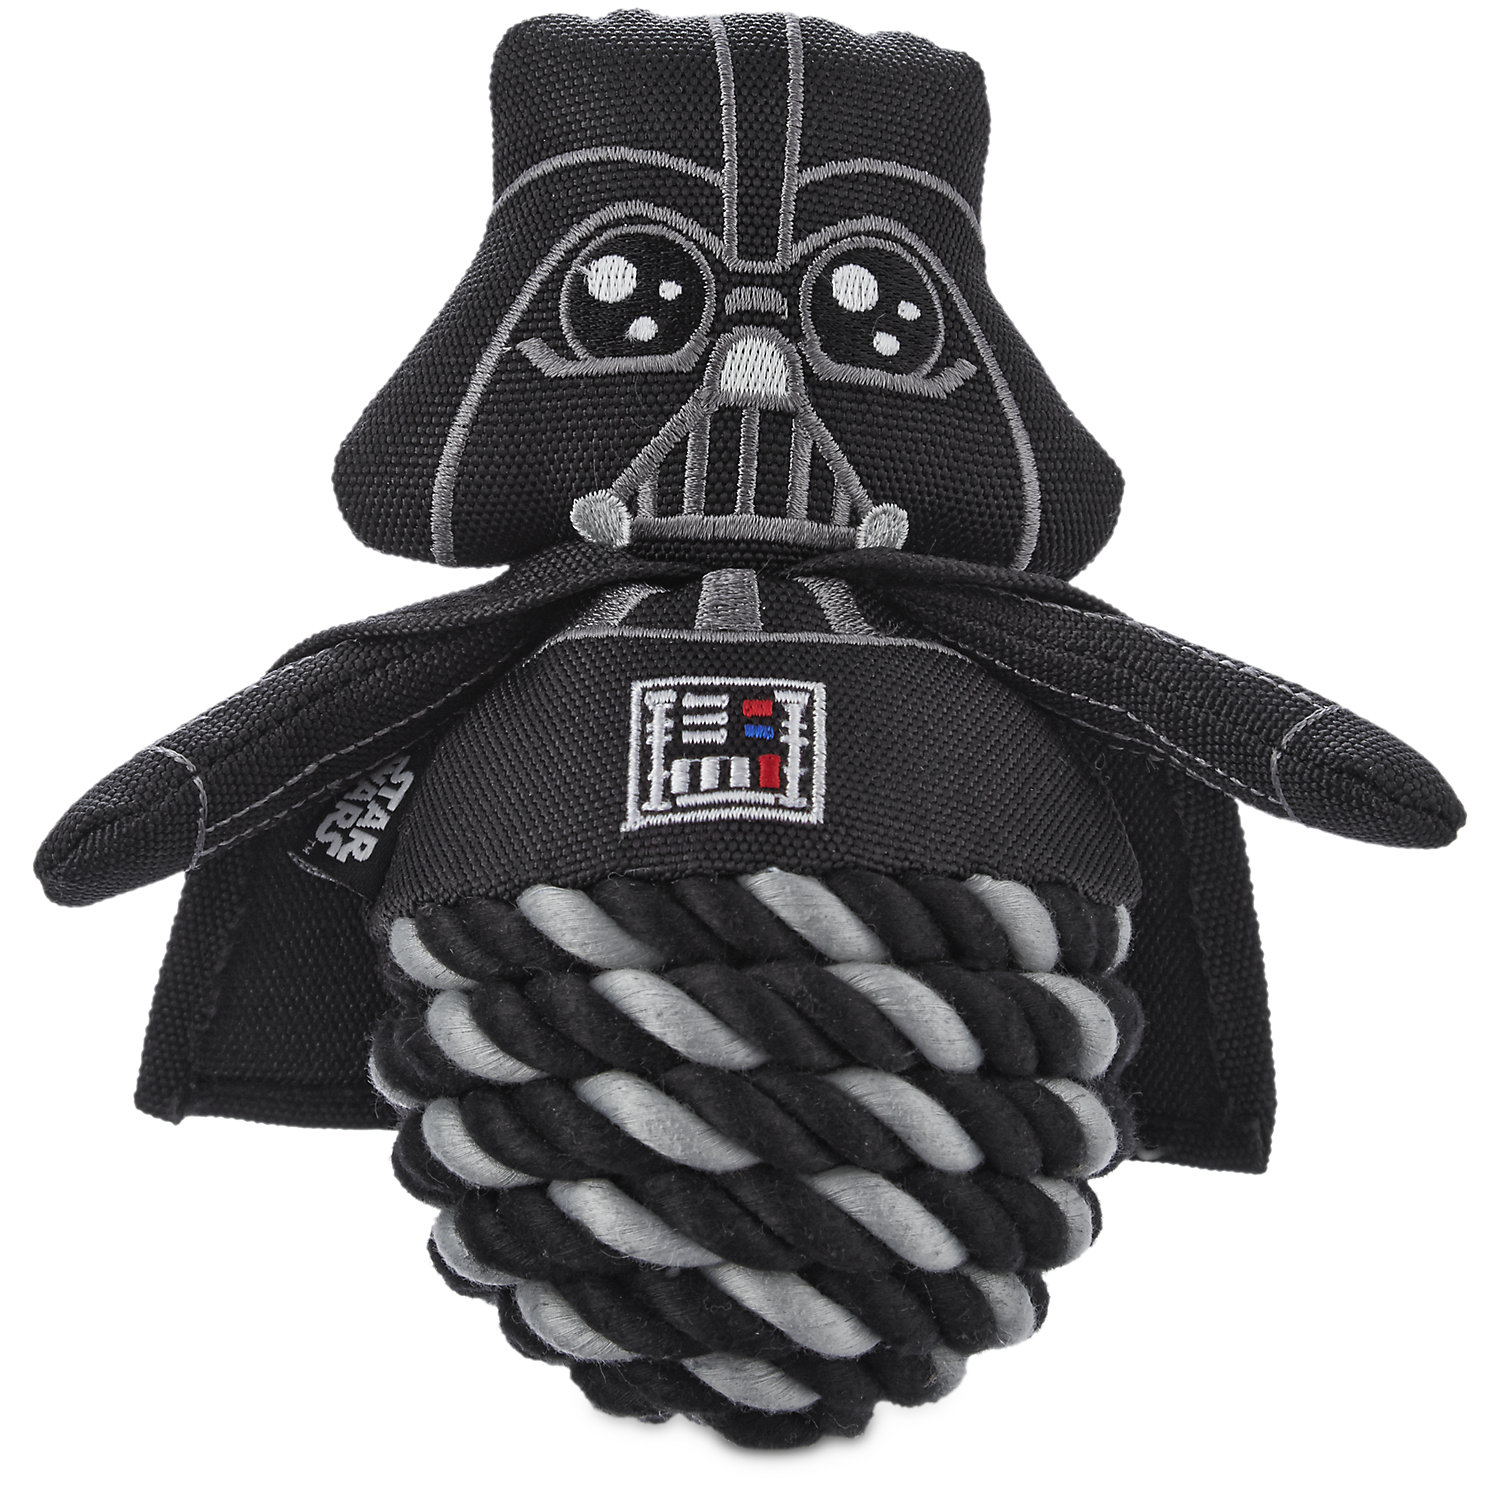 STAR WARS Darth Vader Rope Ball Dog Toy, 6